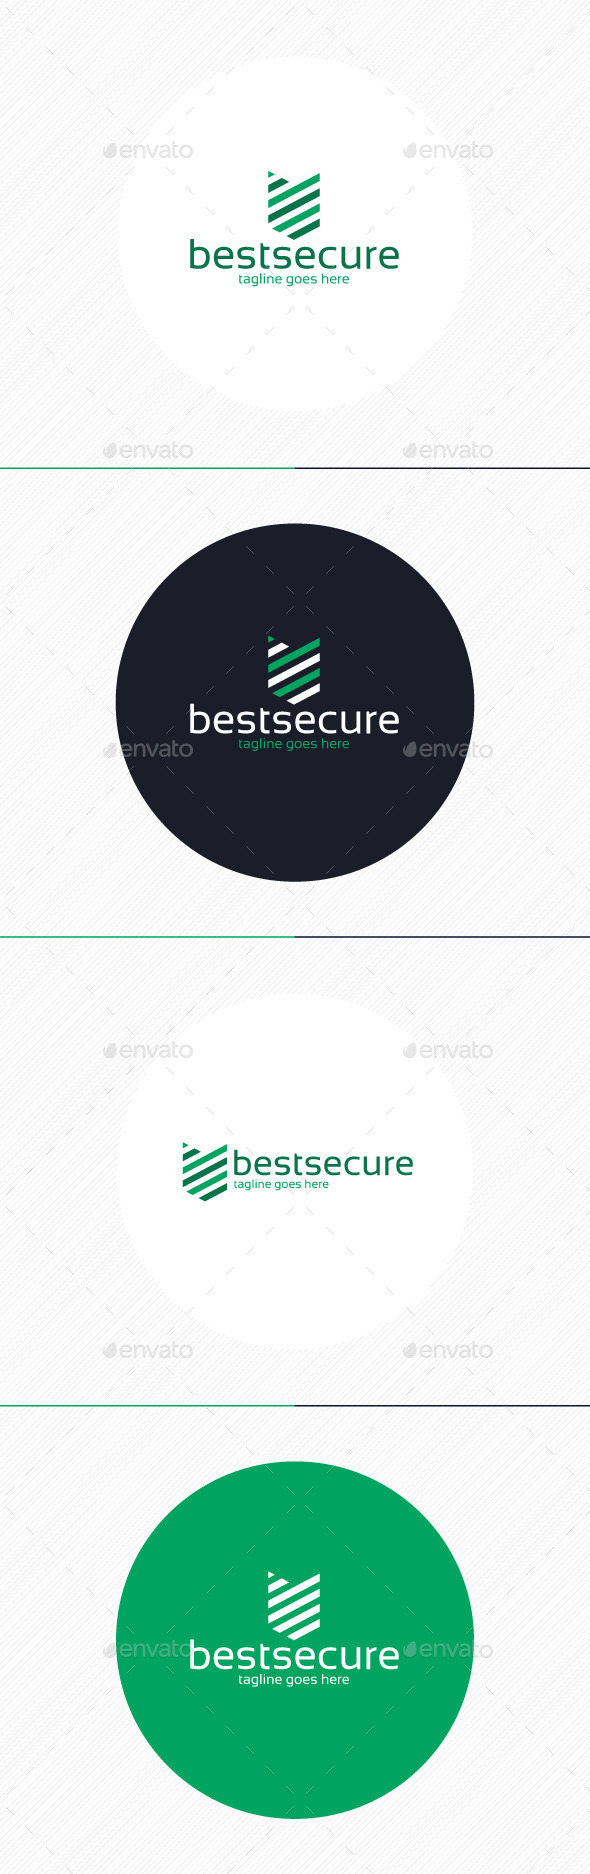 Best Secure Logo - Vector Abstract